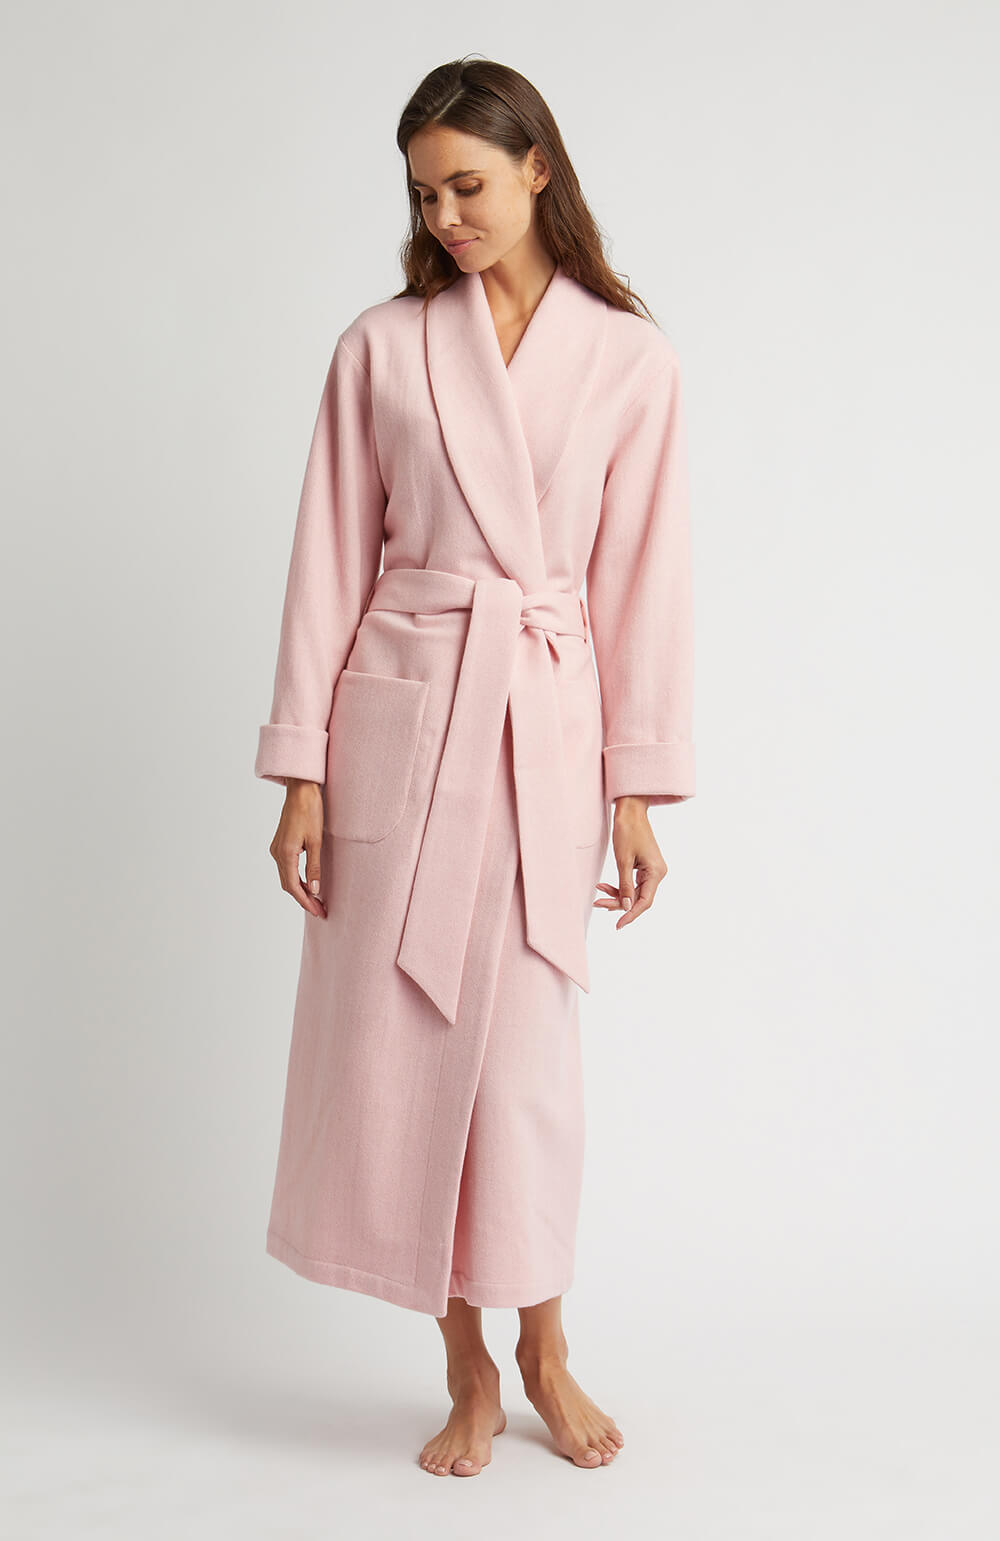 Silk-Lined Wool Robe (wlld) - Pink